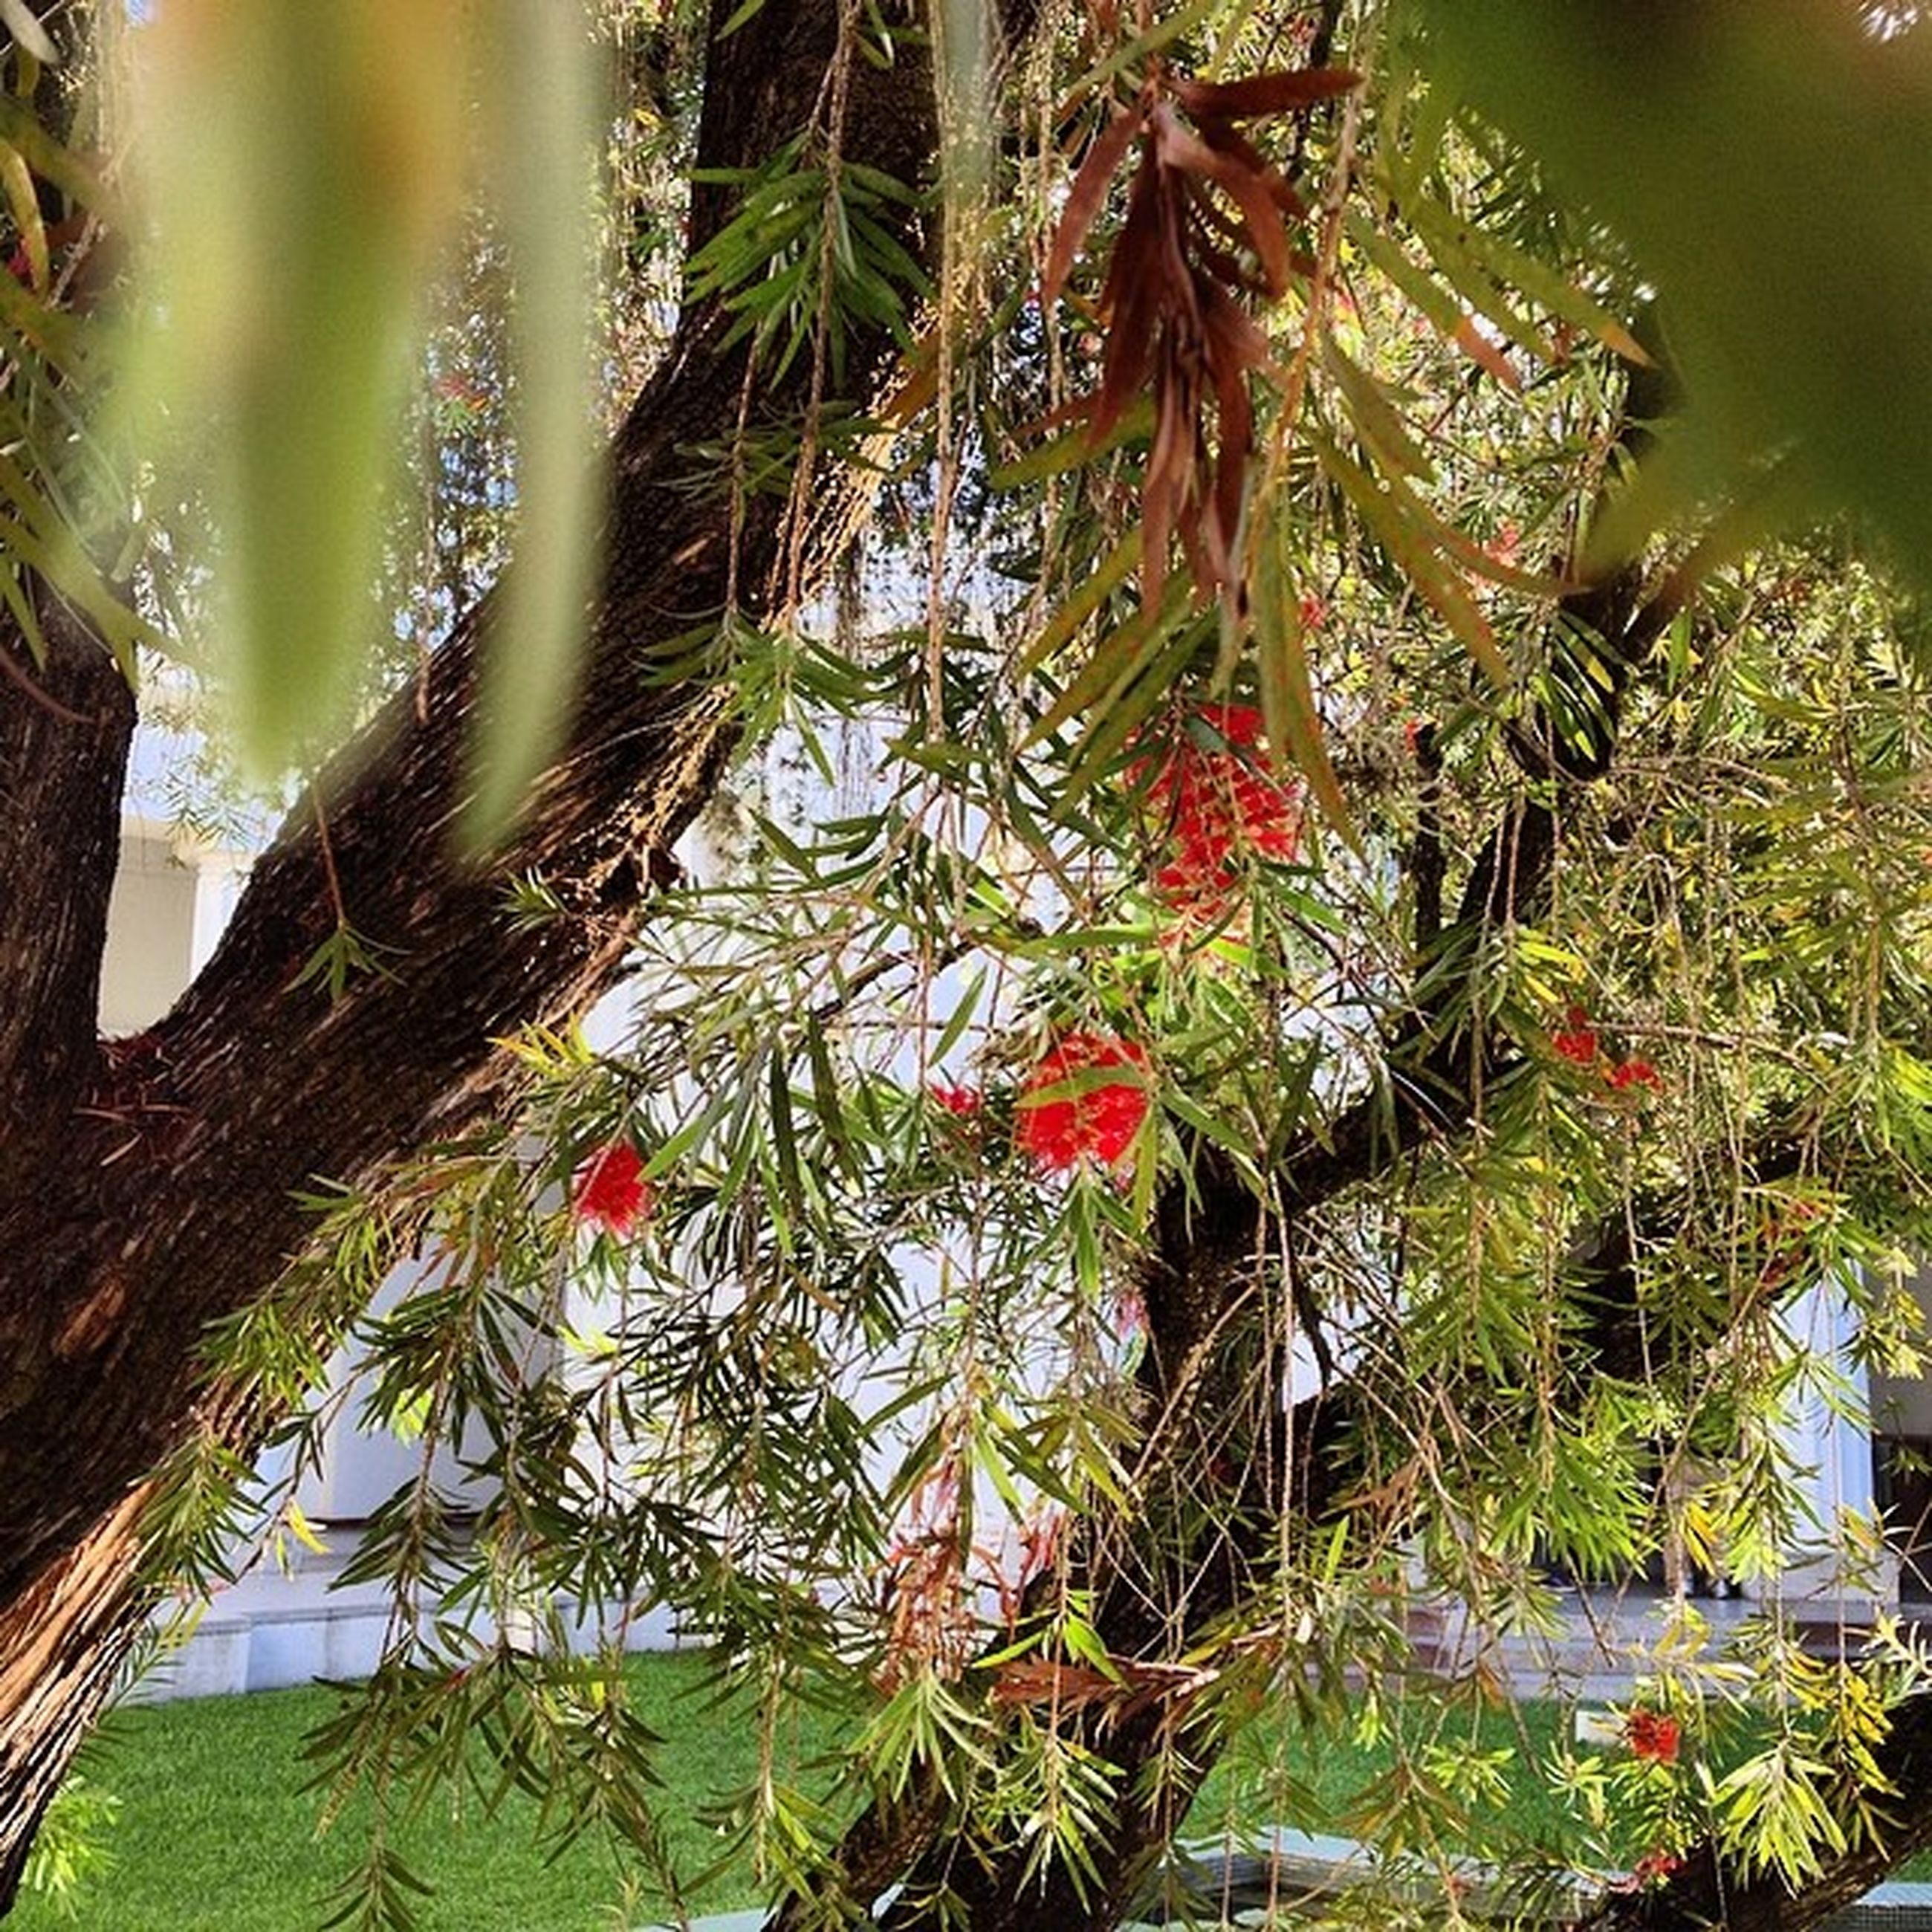 growth, plant, leaf, tree, nature, green color, branch, growing, palm tree, beauty in nature, tranquility, day, outdoors, no people, water, close-up, green, freshness, red, low angle view